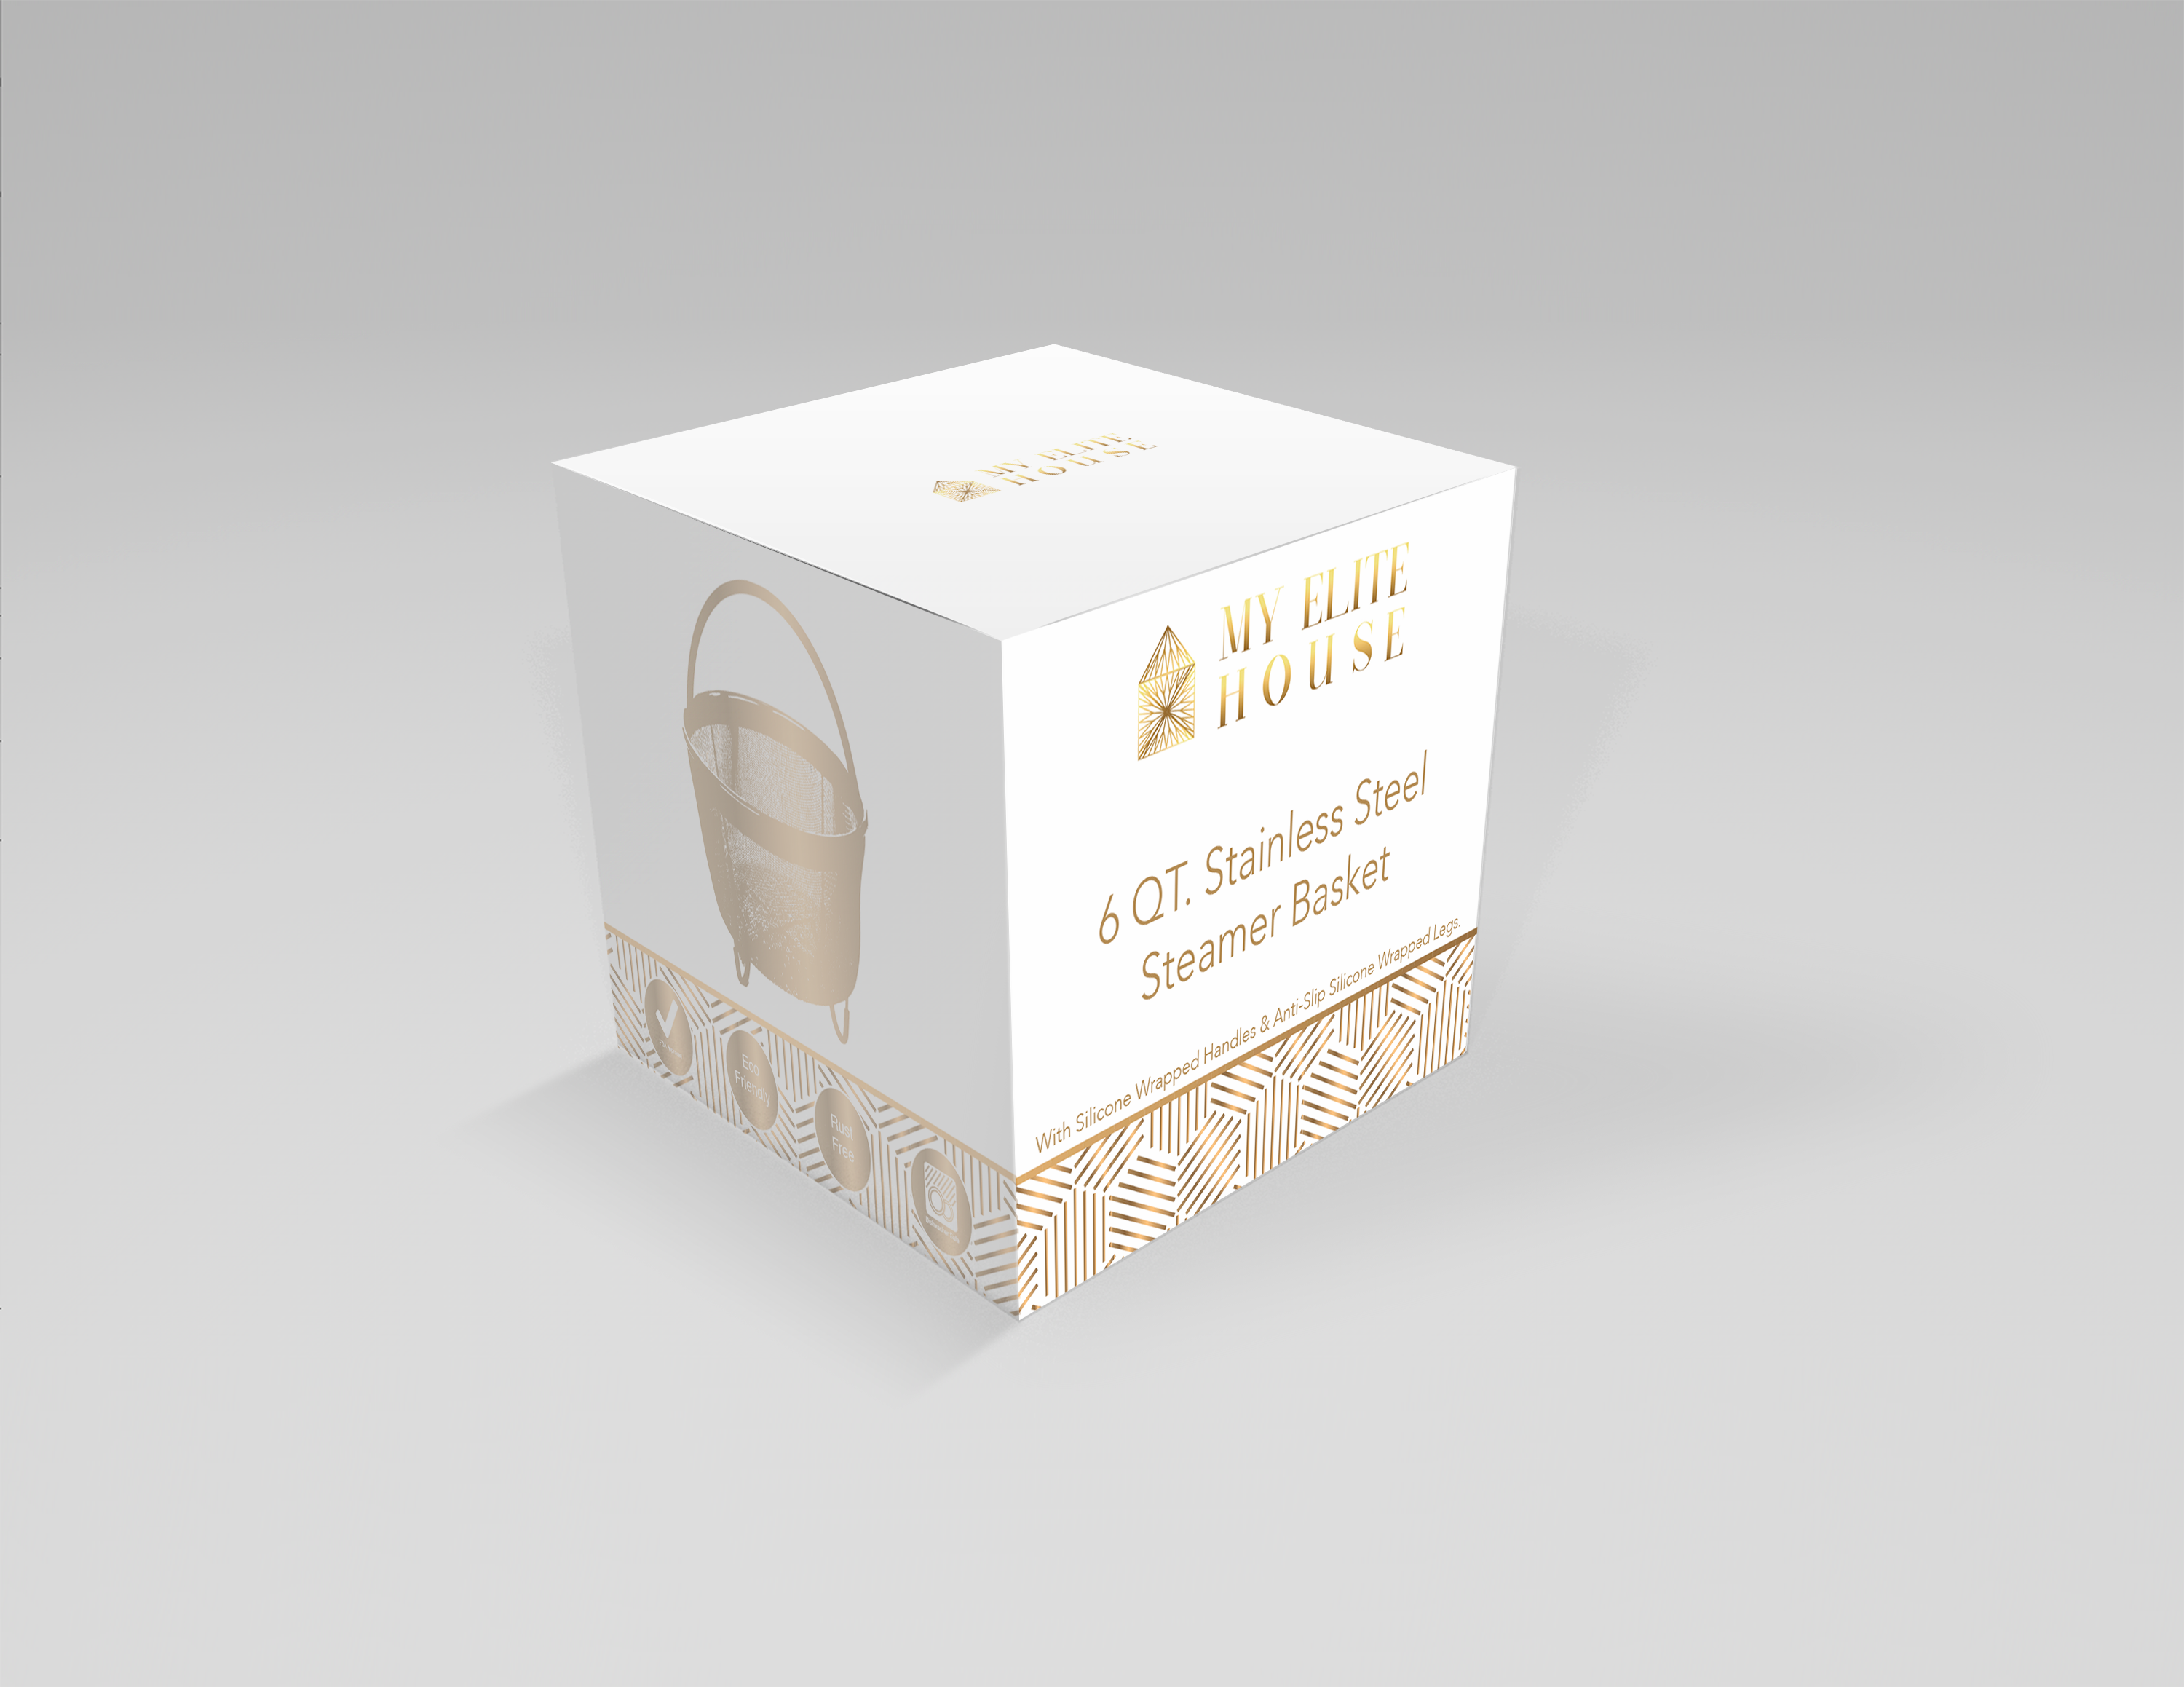 Clean & Sophisticated, Luxurious packaging design.